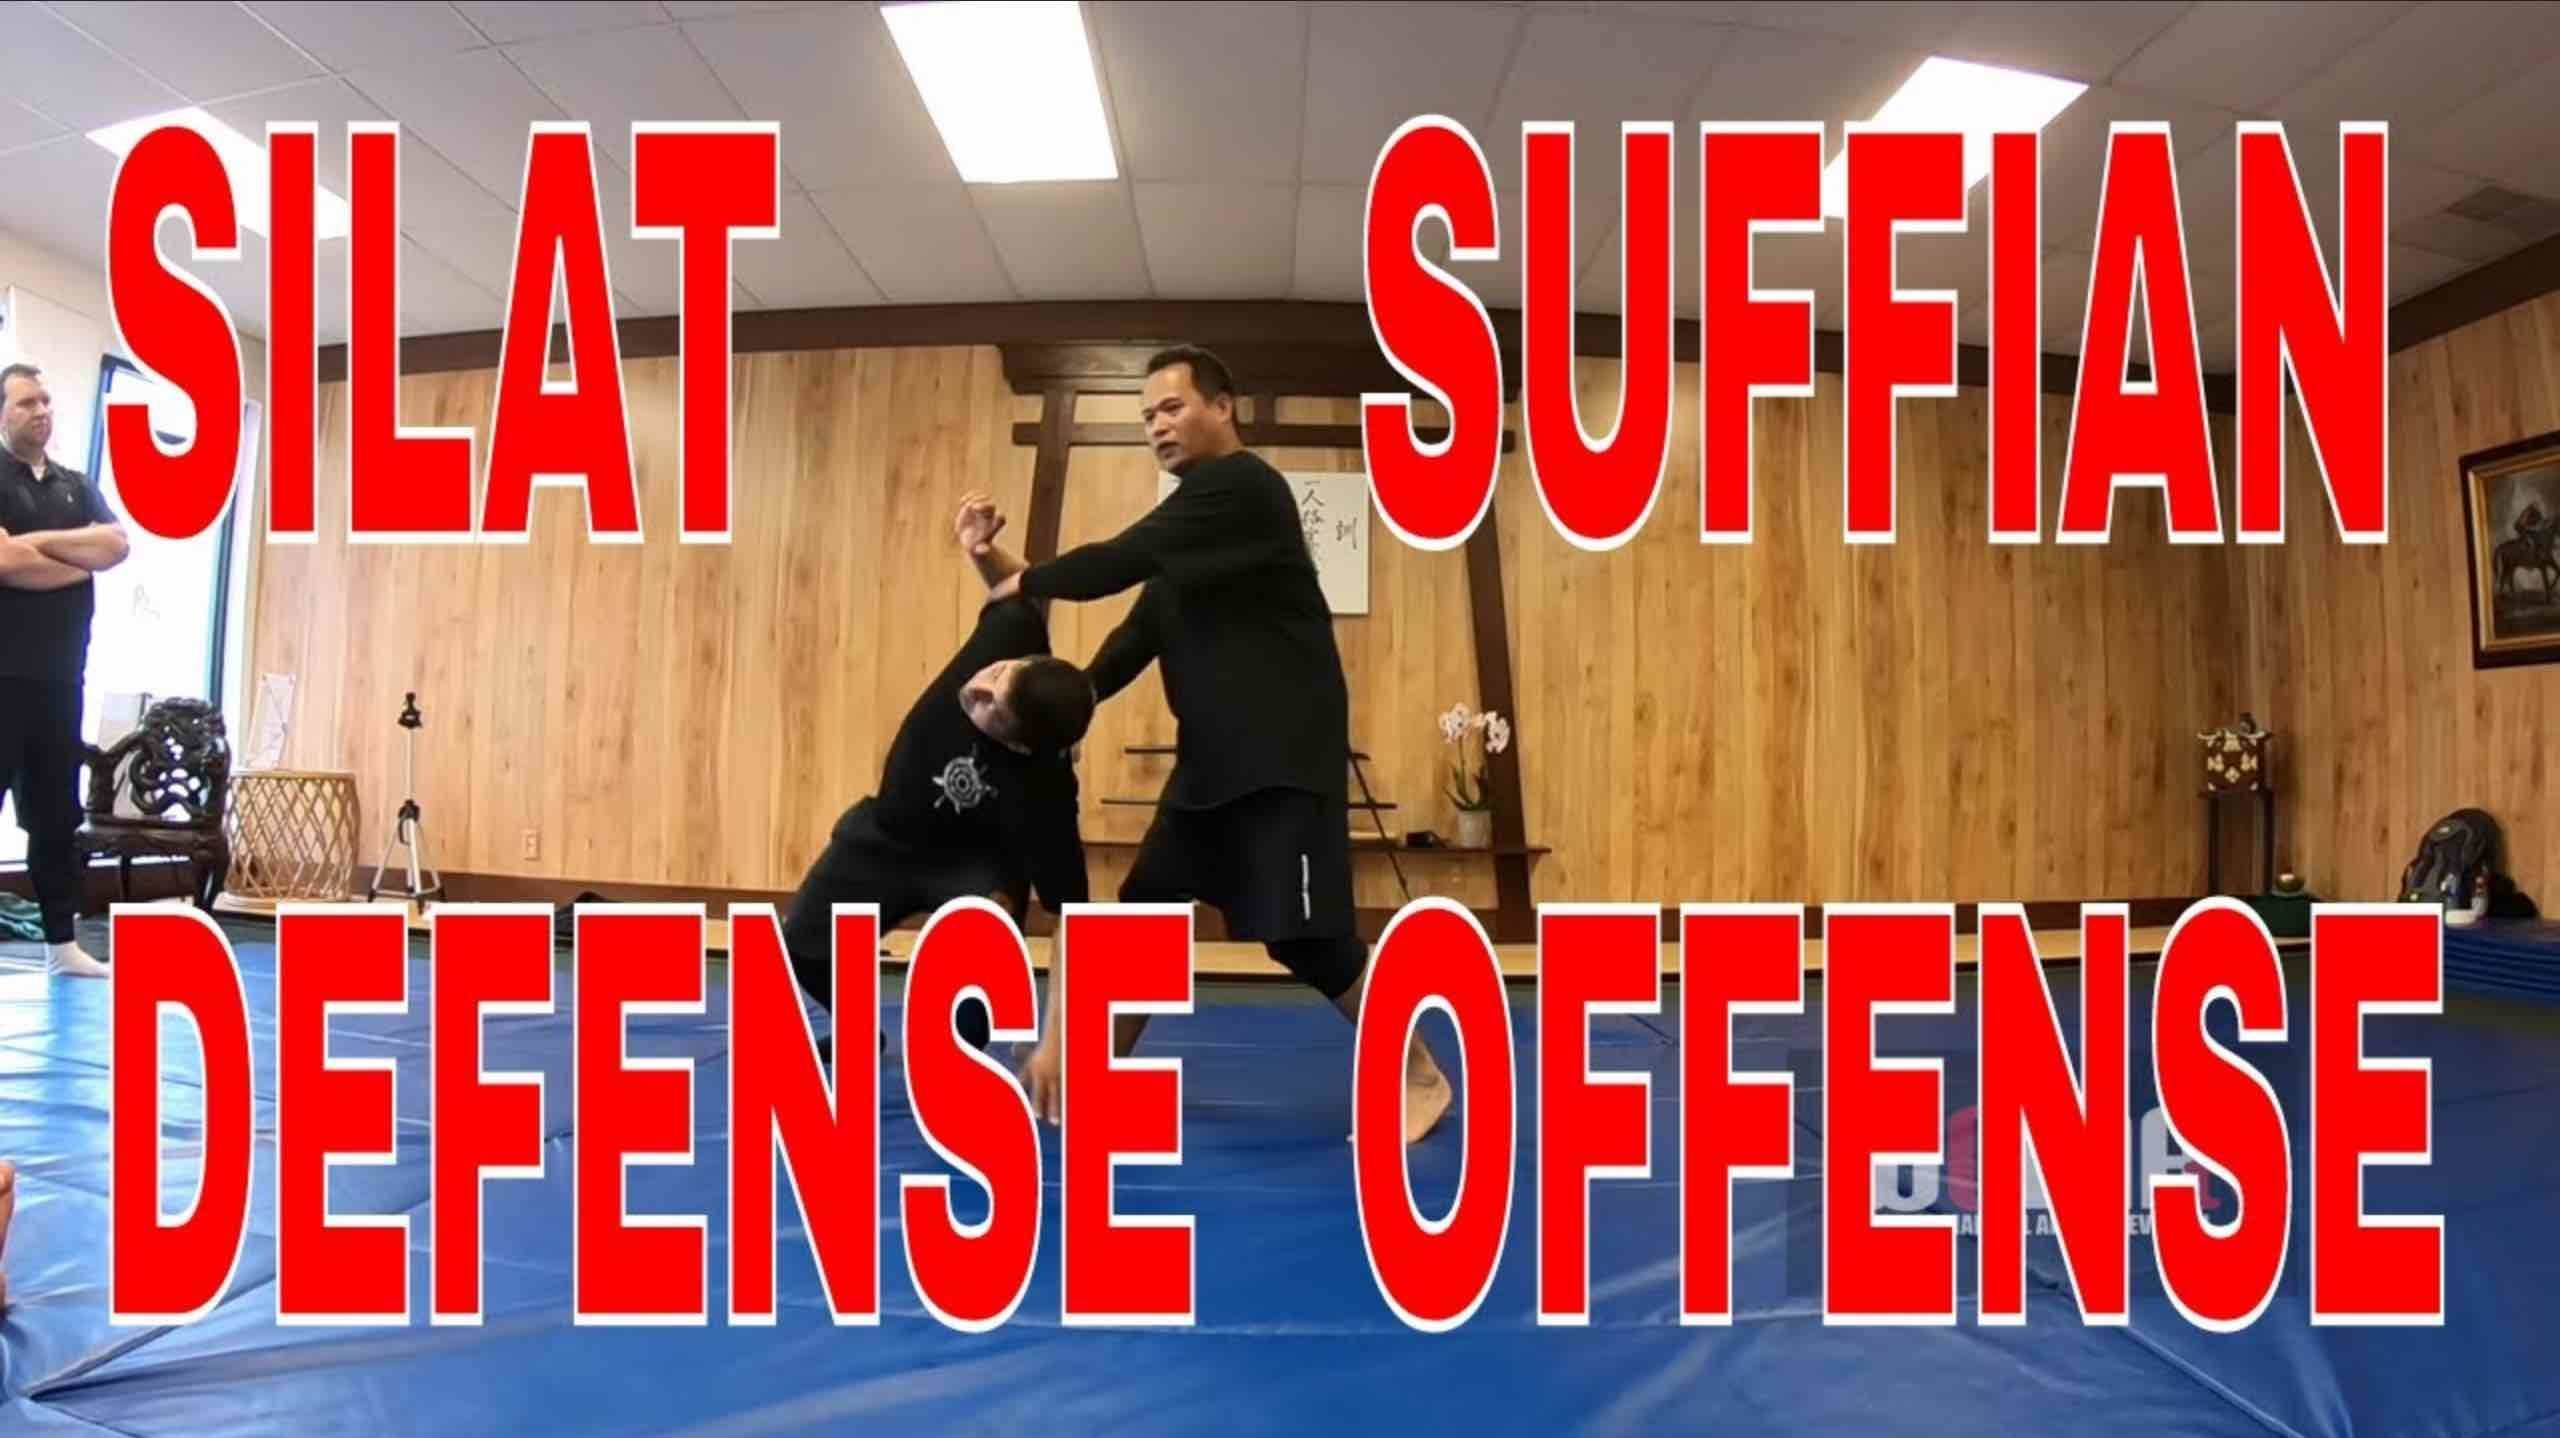 Defense Offense FLOW SILAT Training